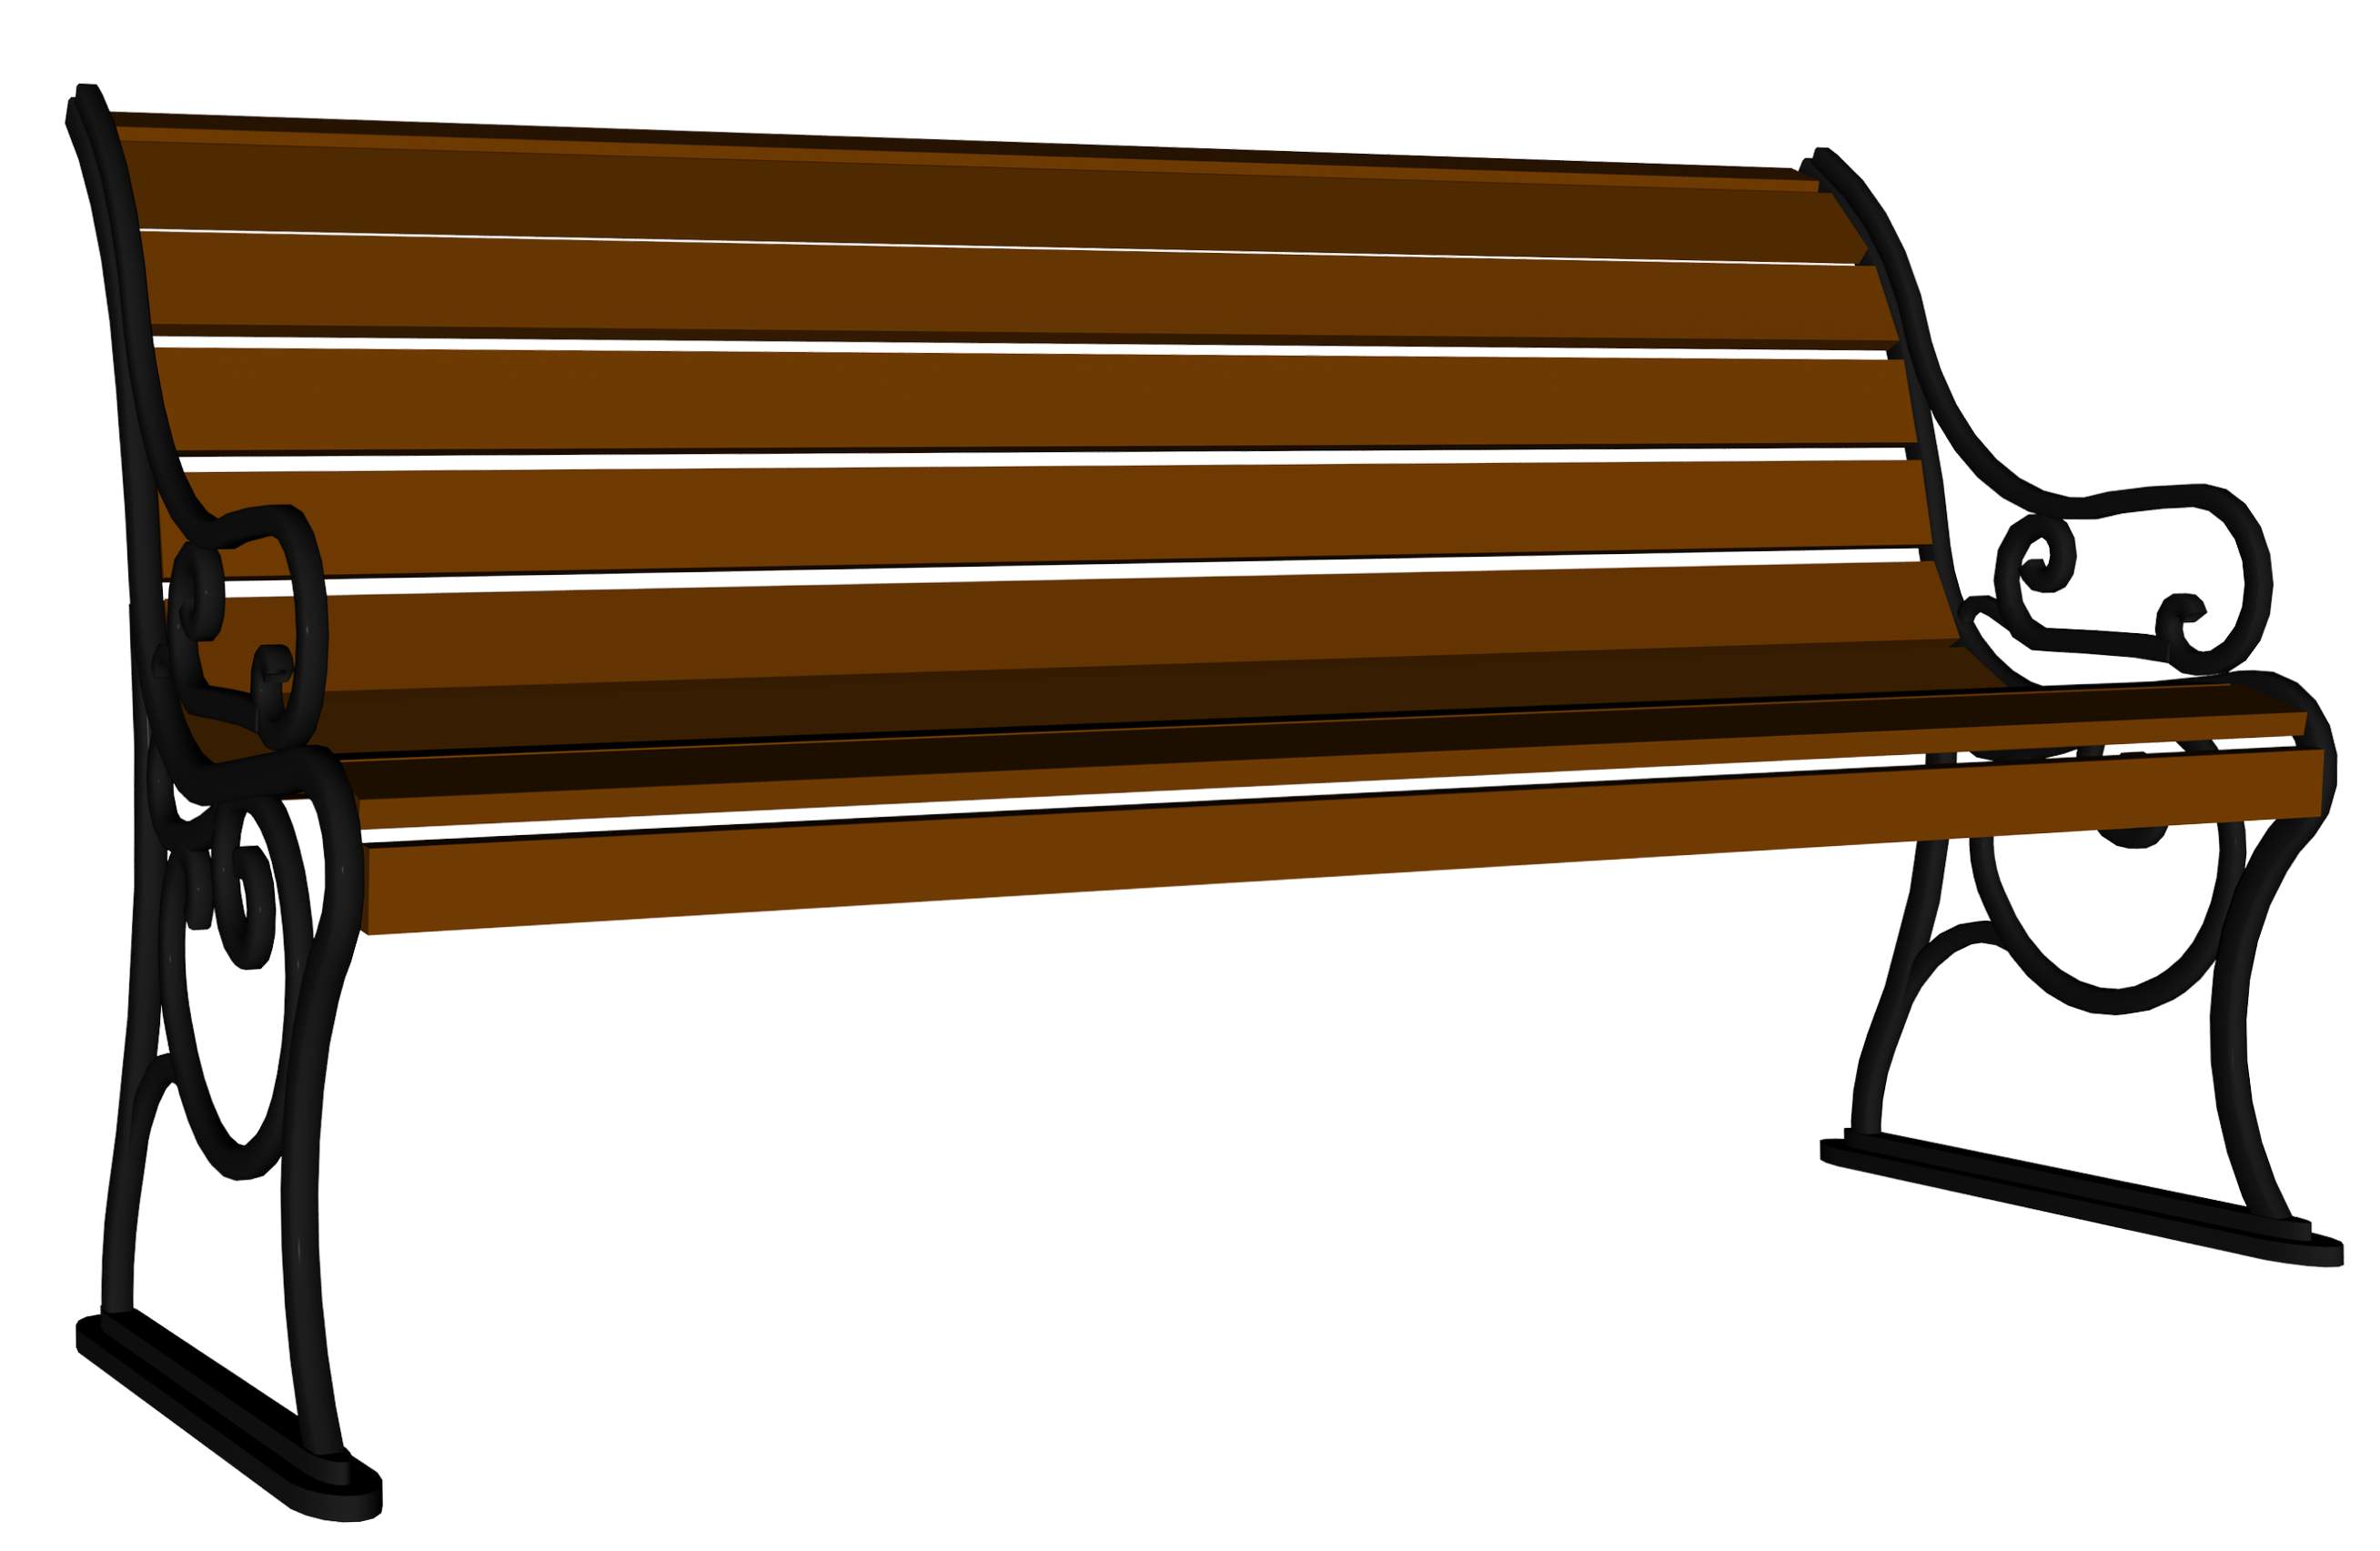 Wooden image gallery yopriceville. Outdoor bench png jpg transparent library